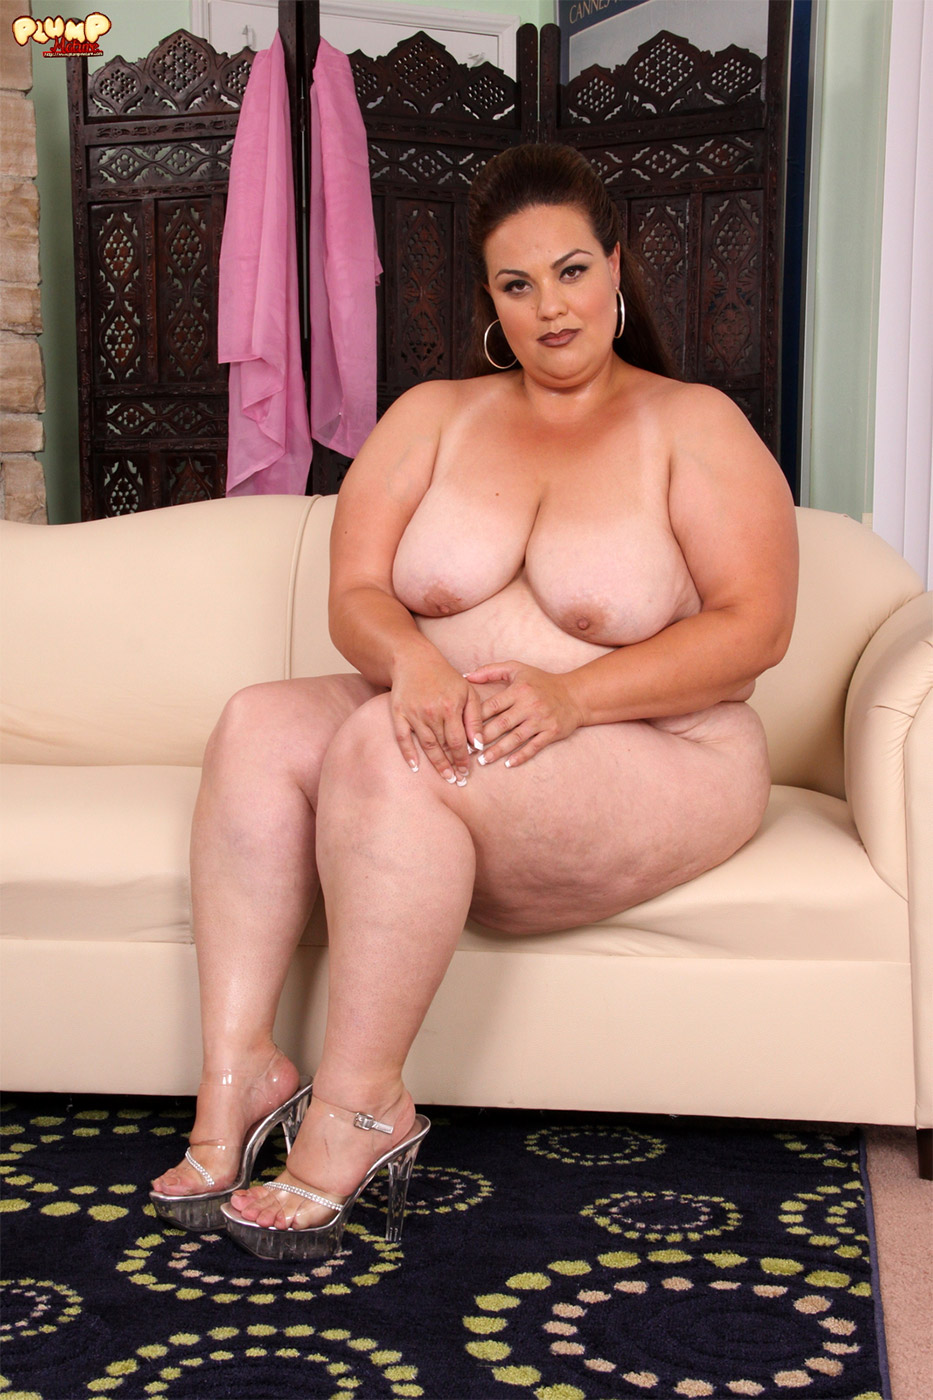 chubby mature honey poses naked « plump mature updates